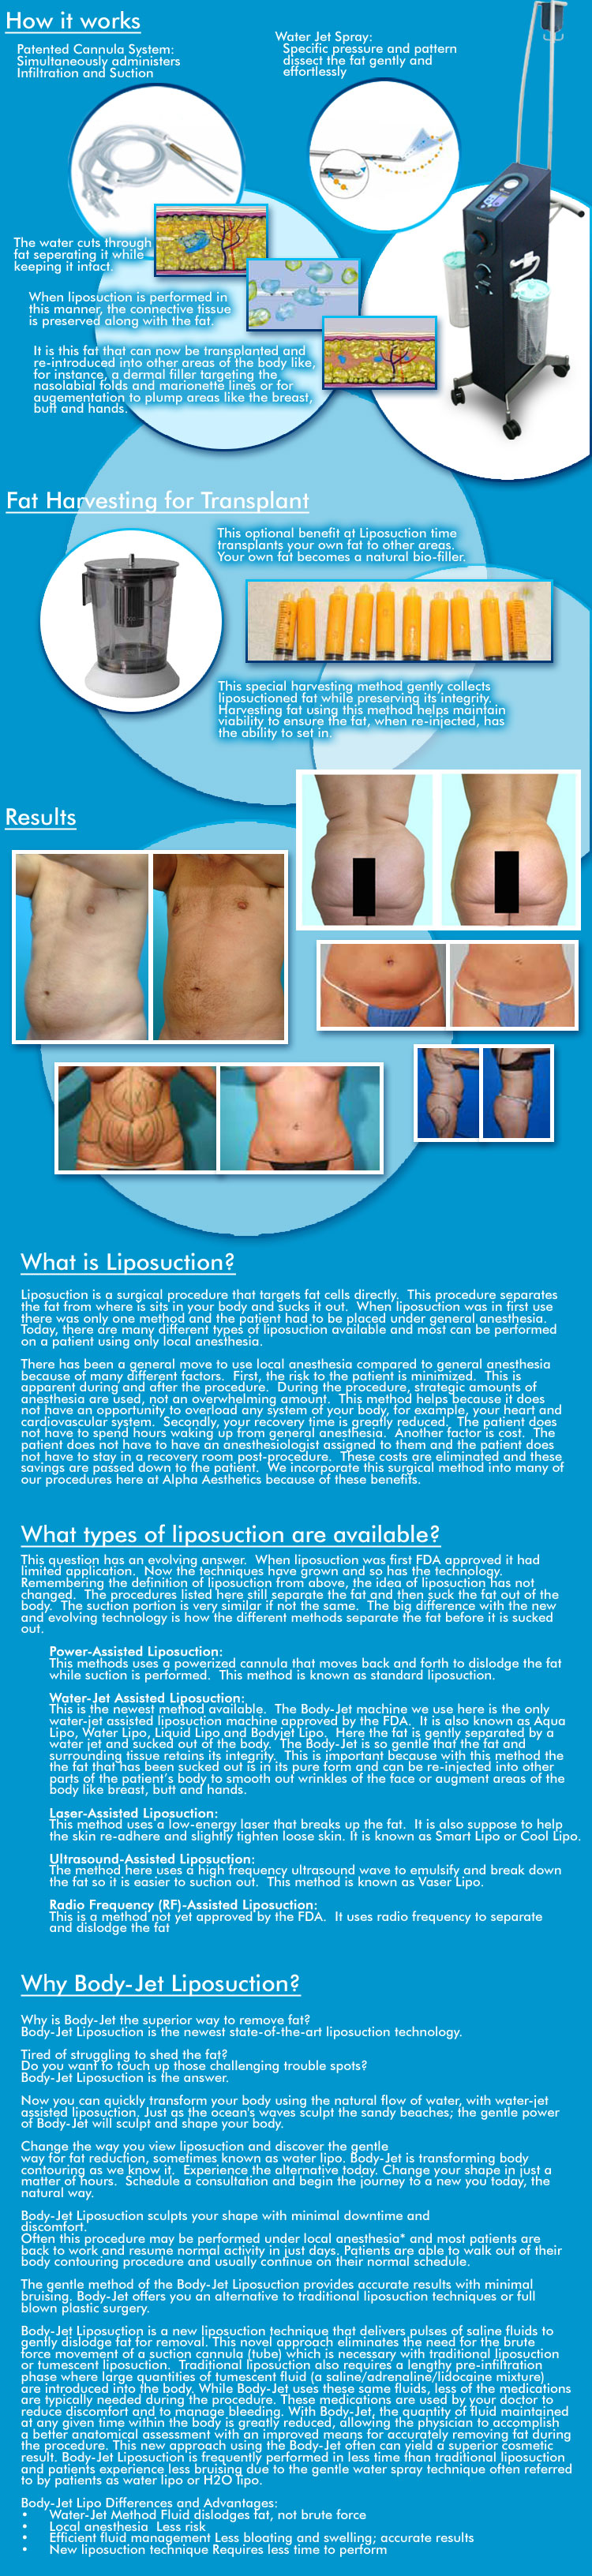 Body-Jet-Liposuction-Page-Blue